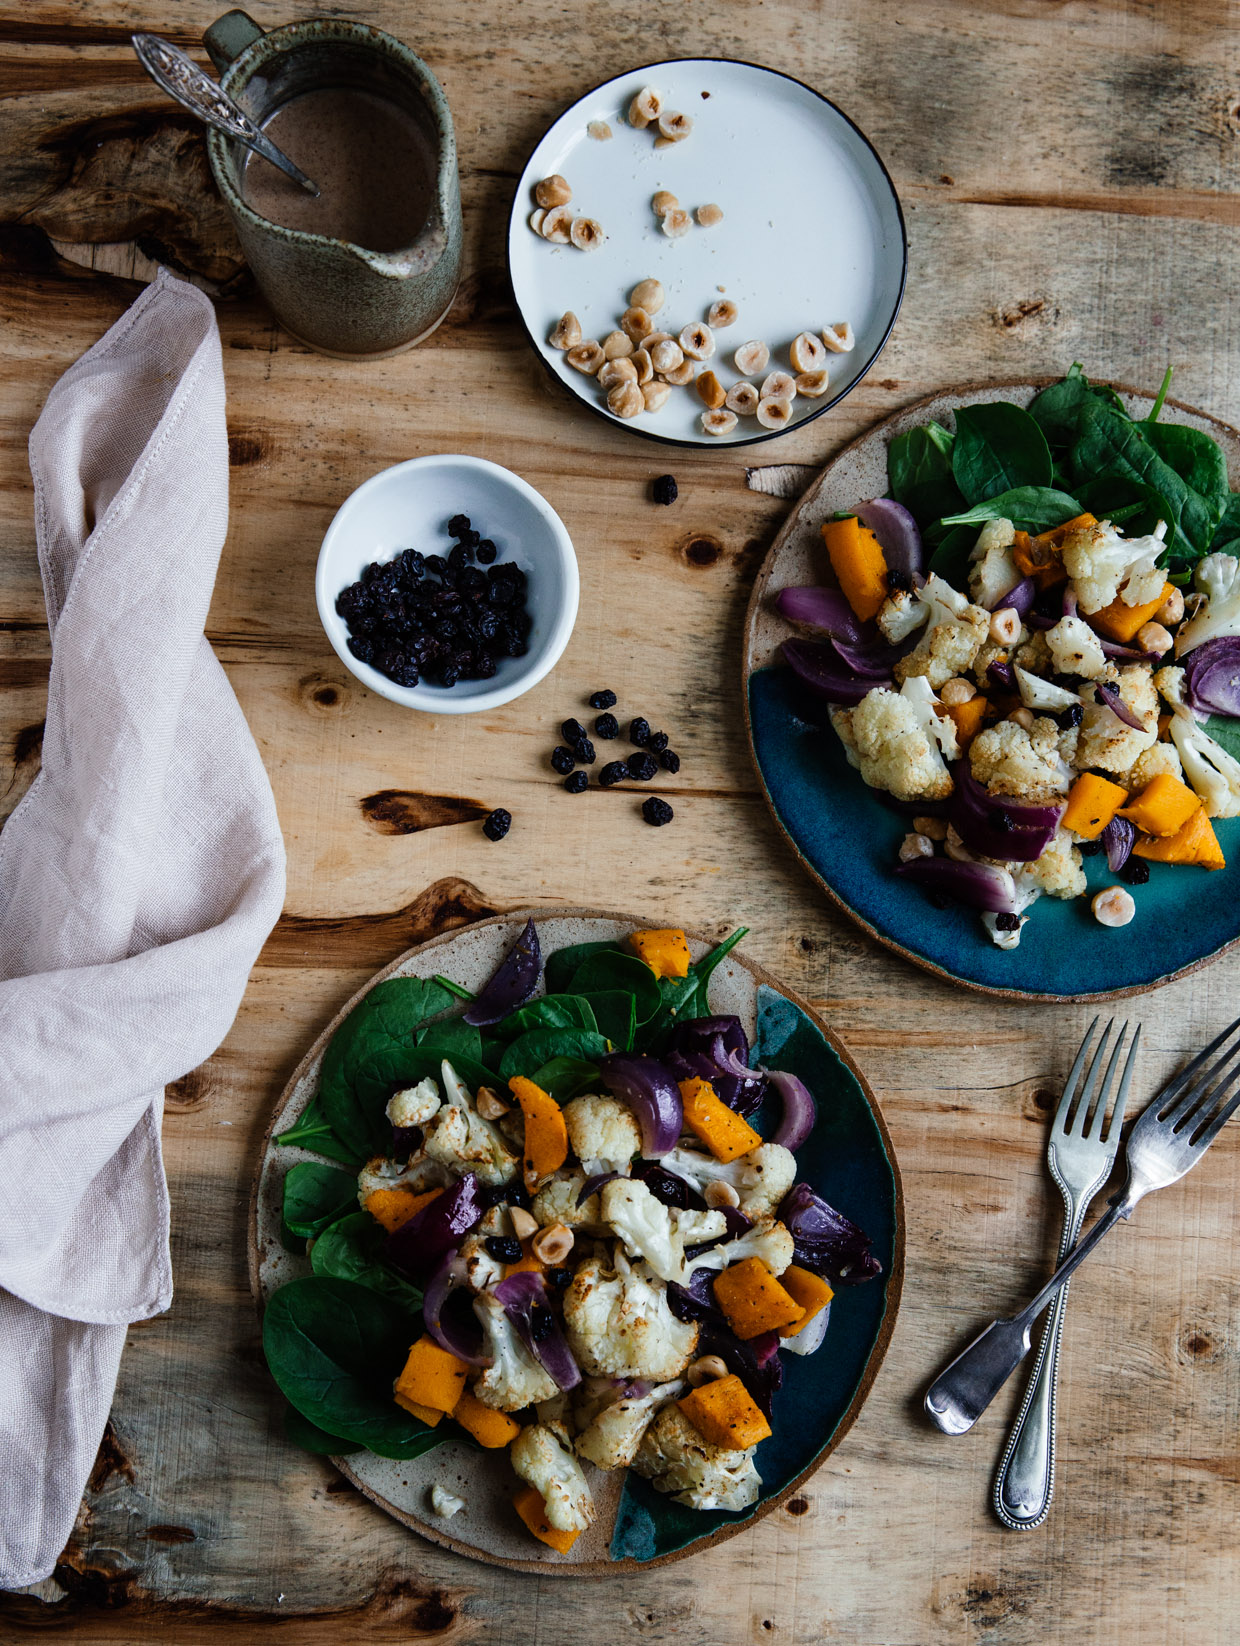 Cauliflower, spinach & hazelnut salad with peanut butter dressing